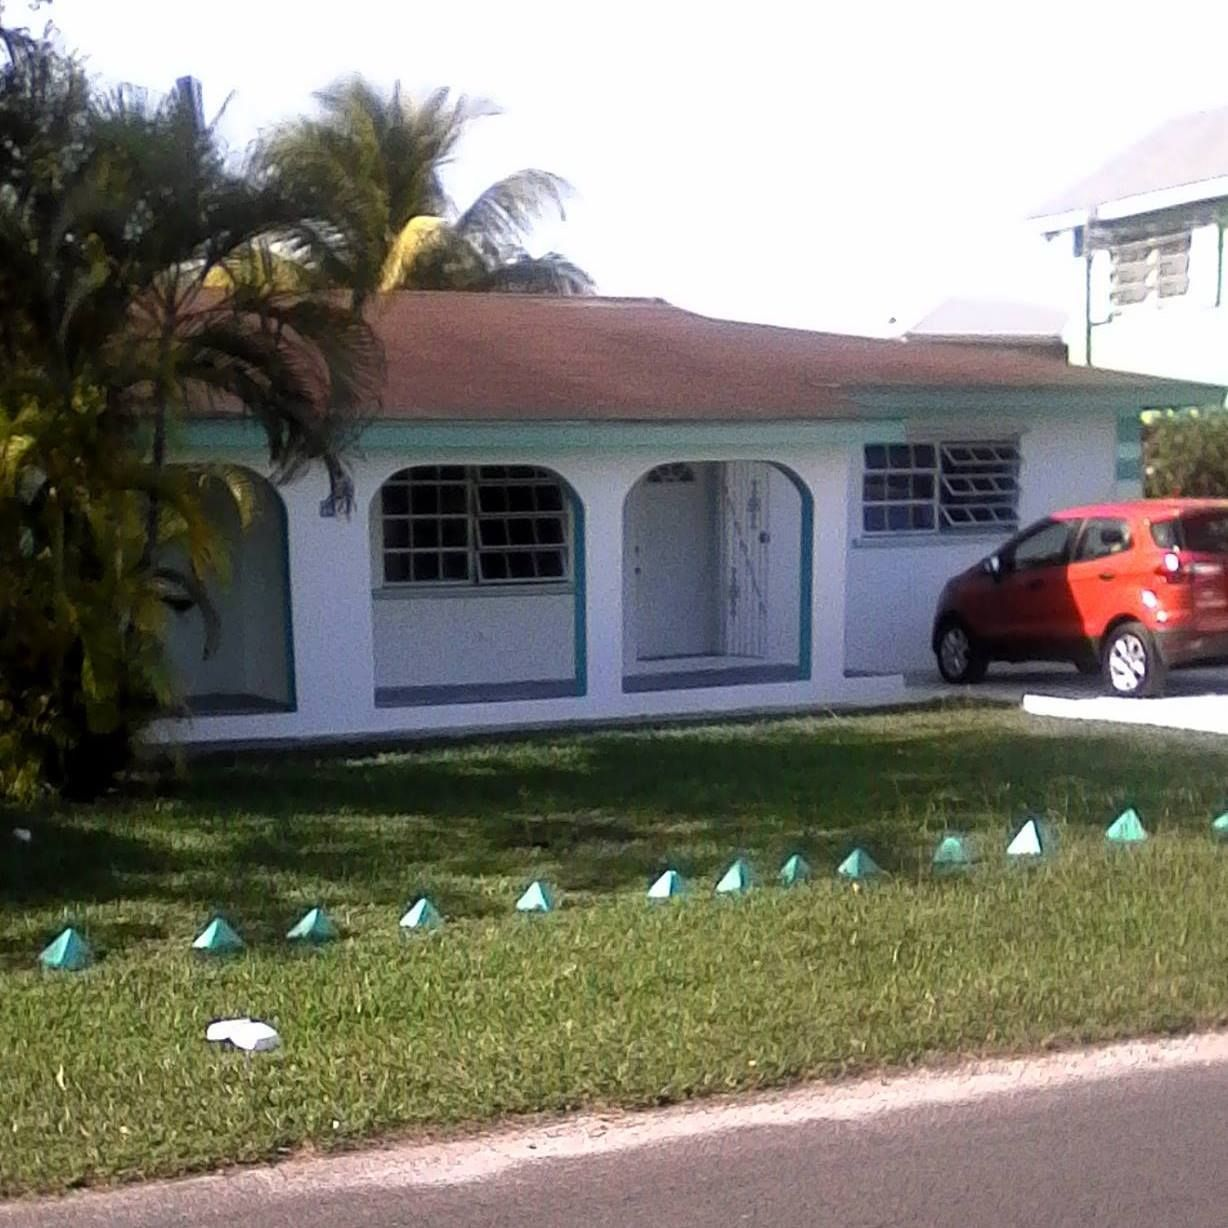 4 Beds 2 Baths 2 Utility Rental Apartment In Bahamas Near Beach Sale By Owner Ebay With Images Rental Apartments Bahamas Rental